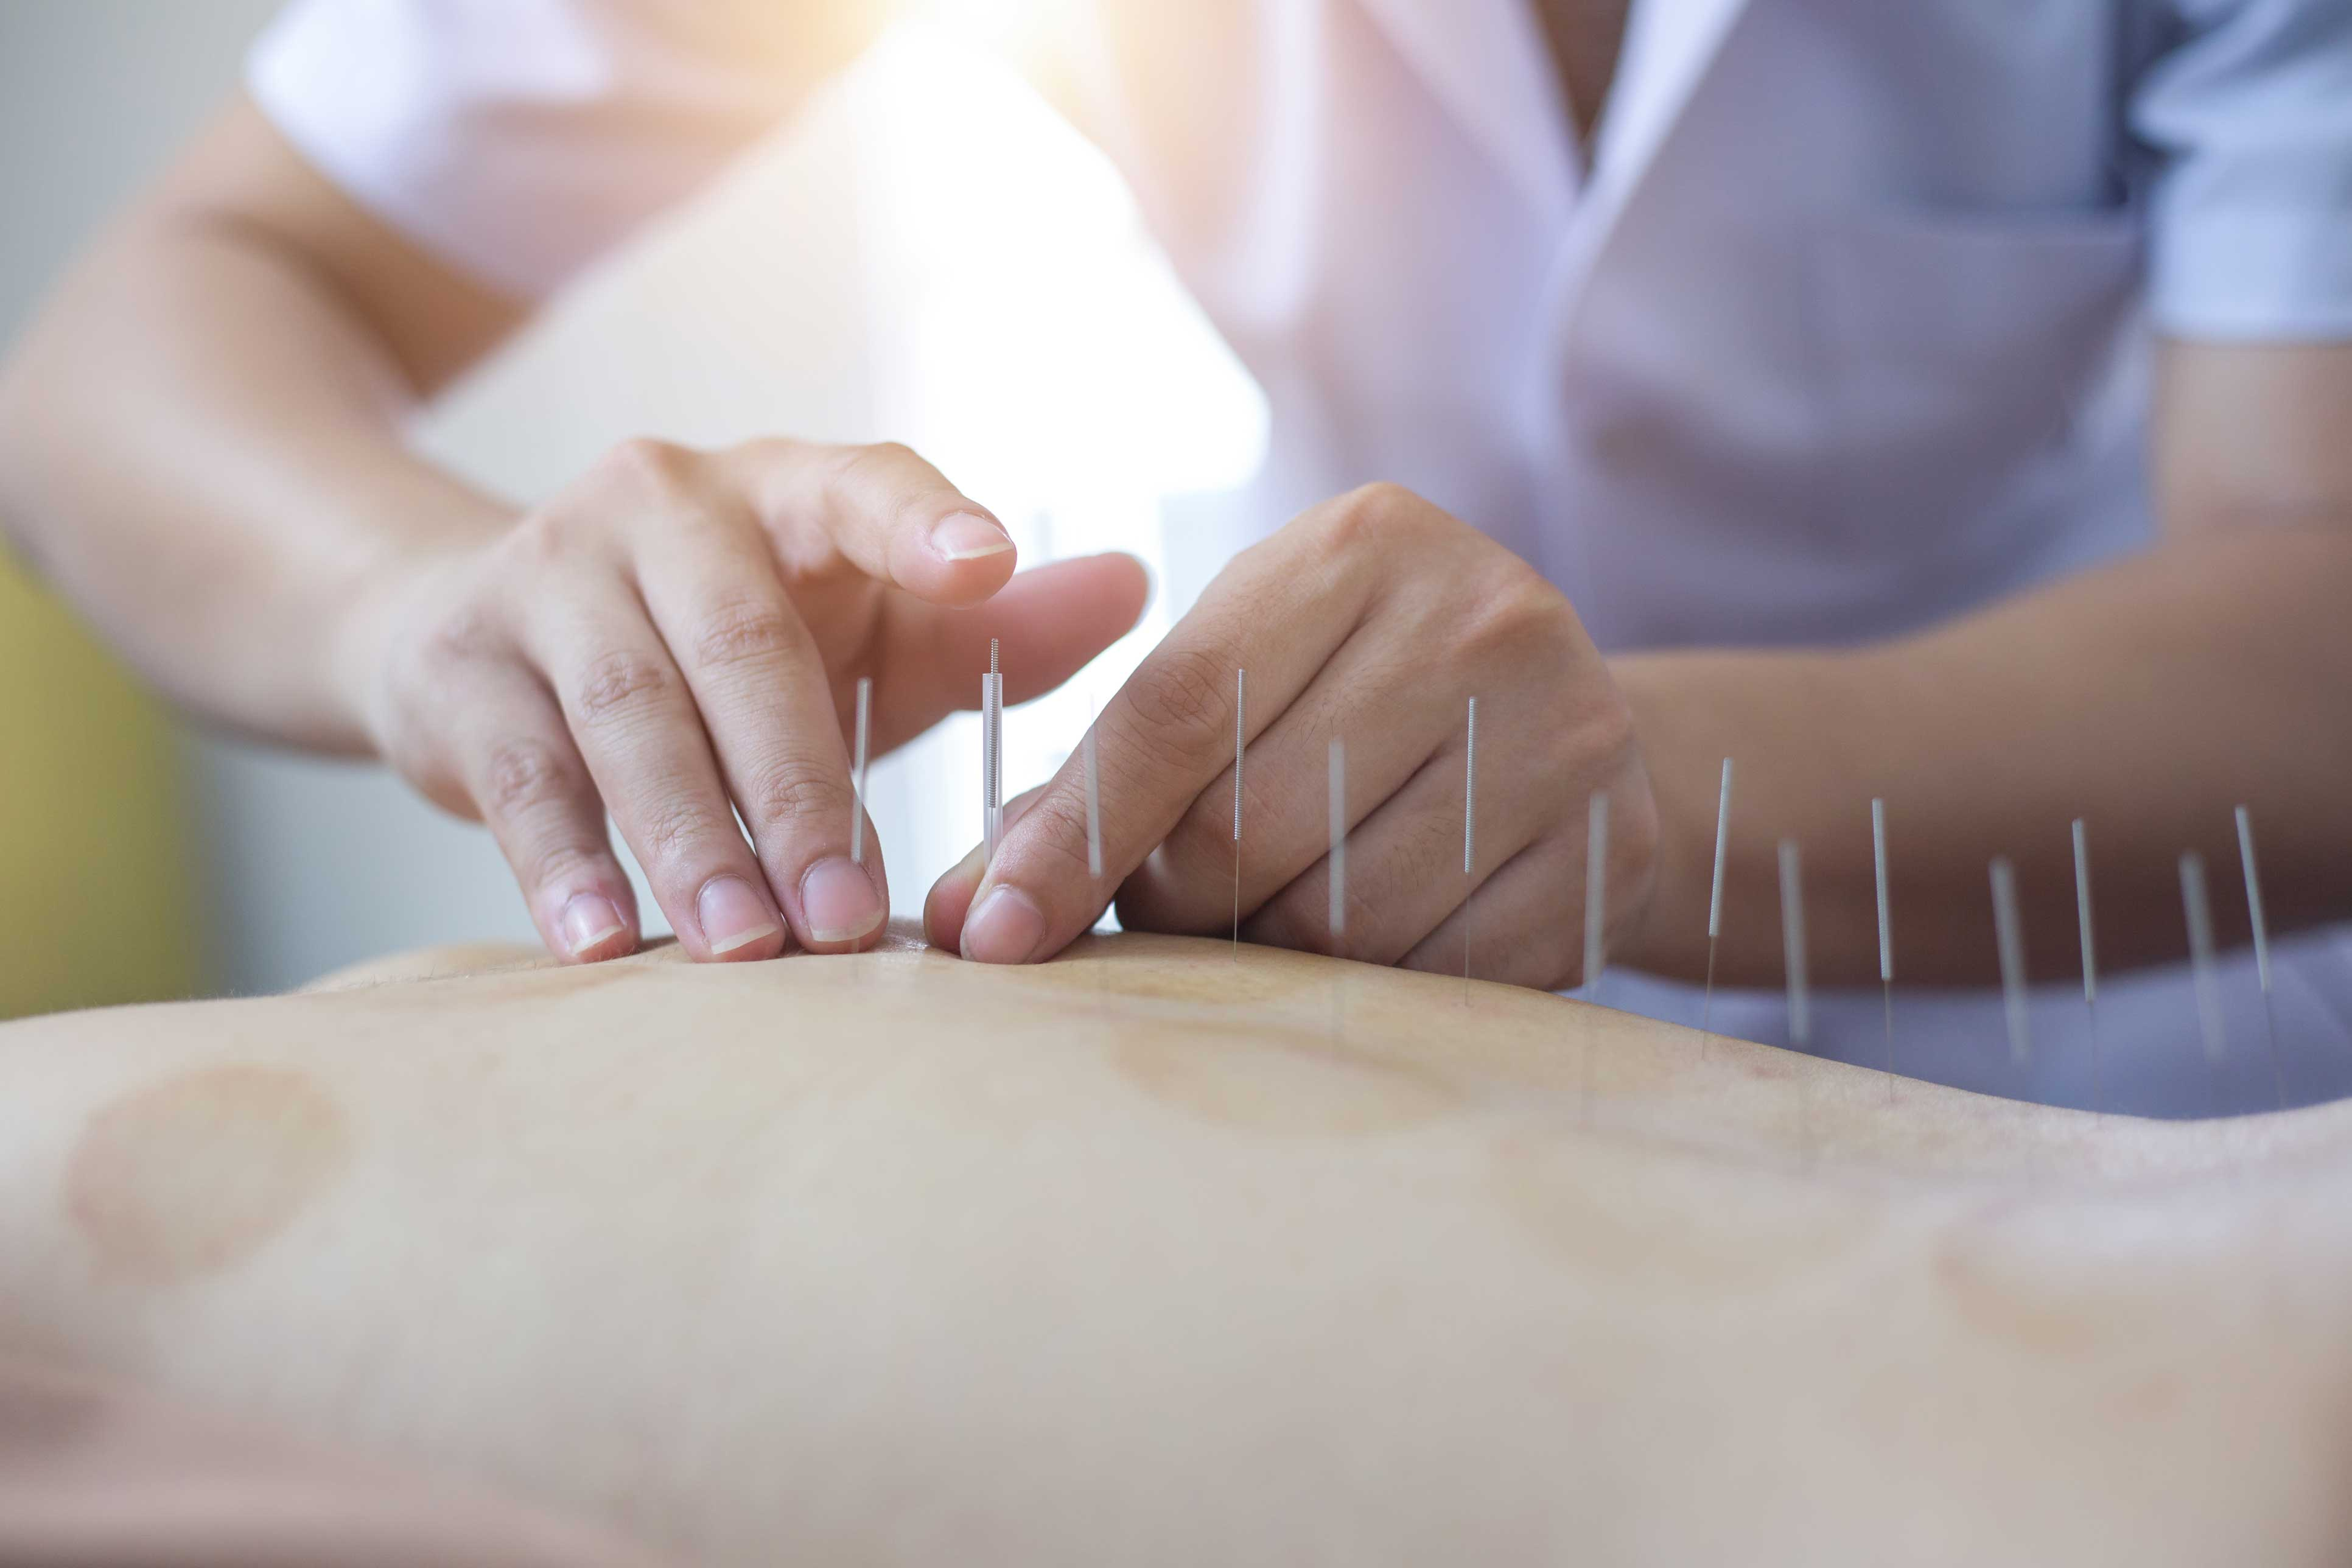 acupuncture at Med Massage and Wellness Clinic